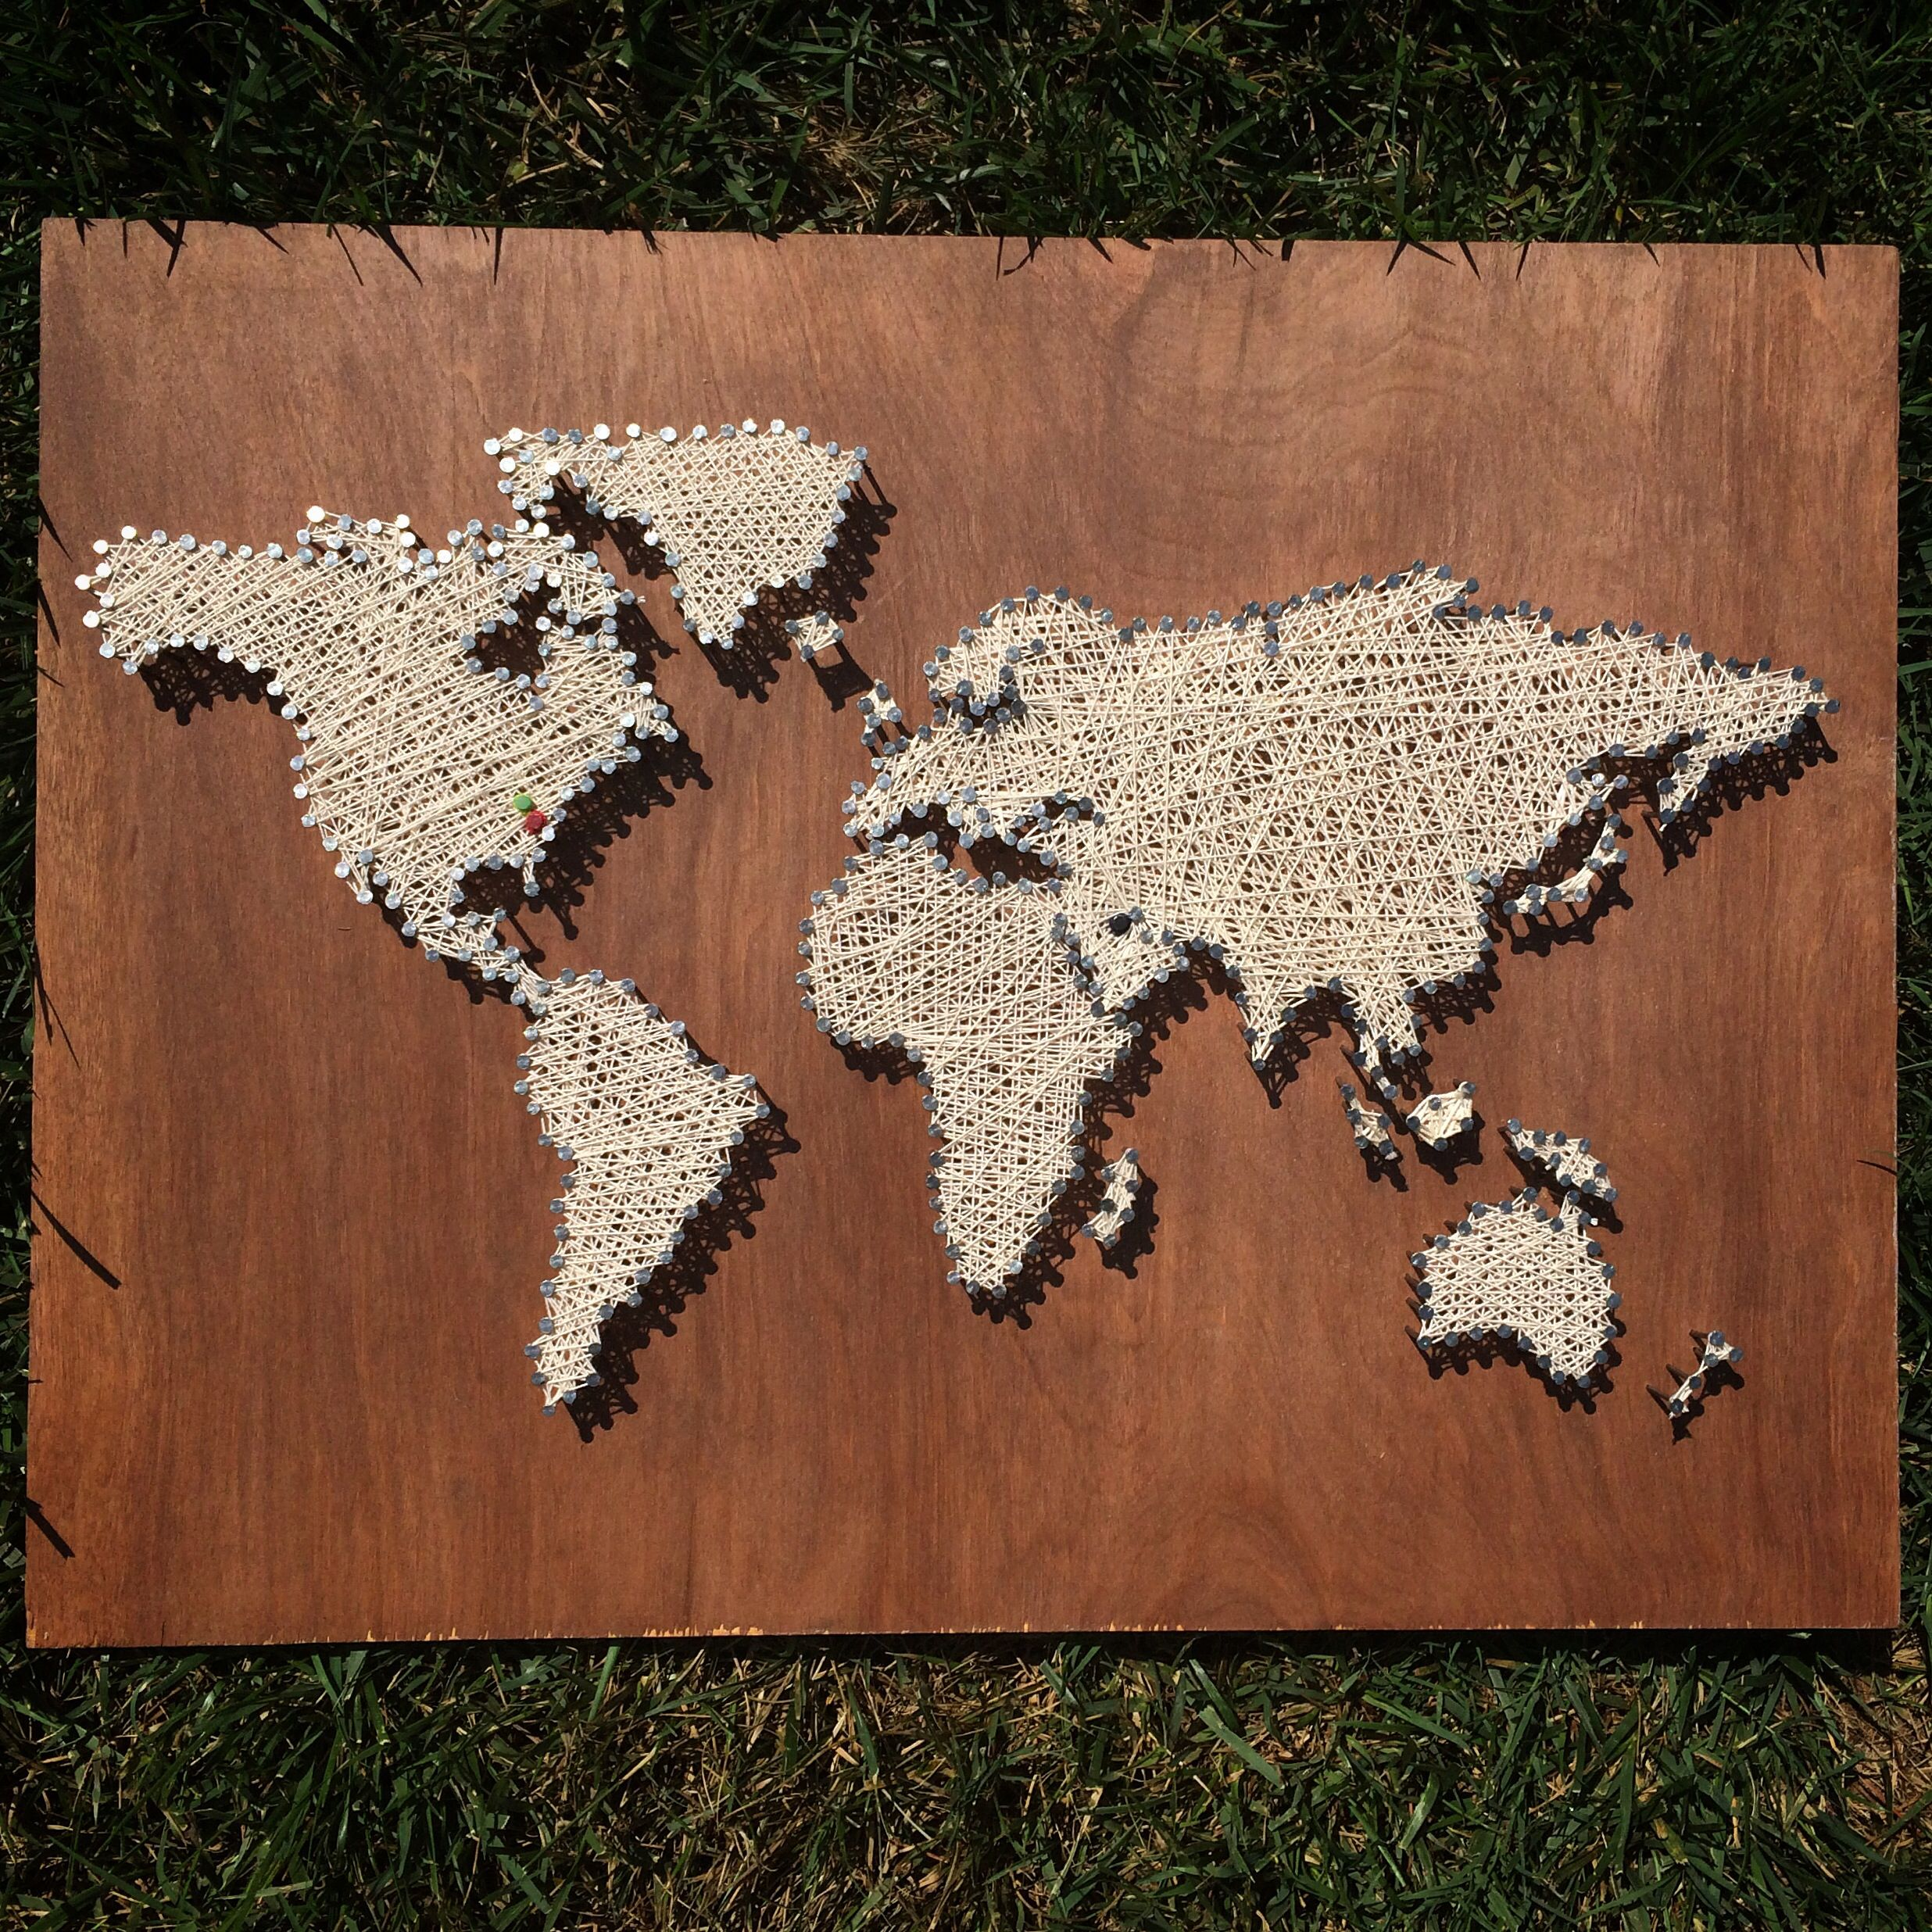 World map string art - look closely and you'll see colored dots over Kuwait, Charleston, and Charlotte. This was custom ordered to represent a family's cross cultural heritage.